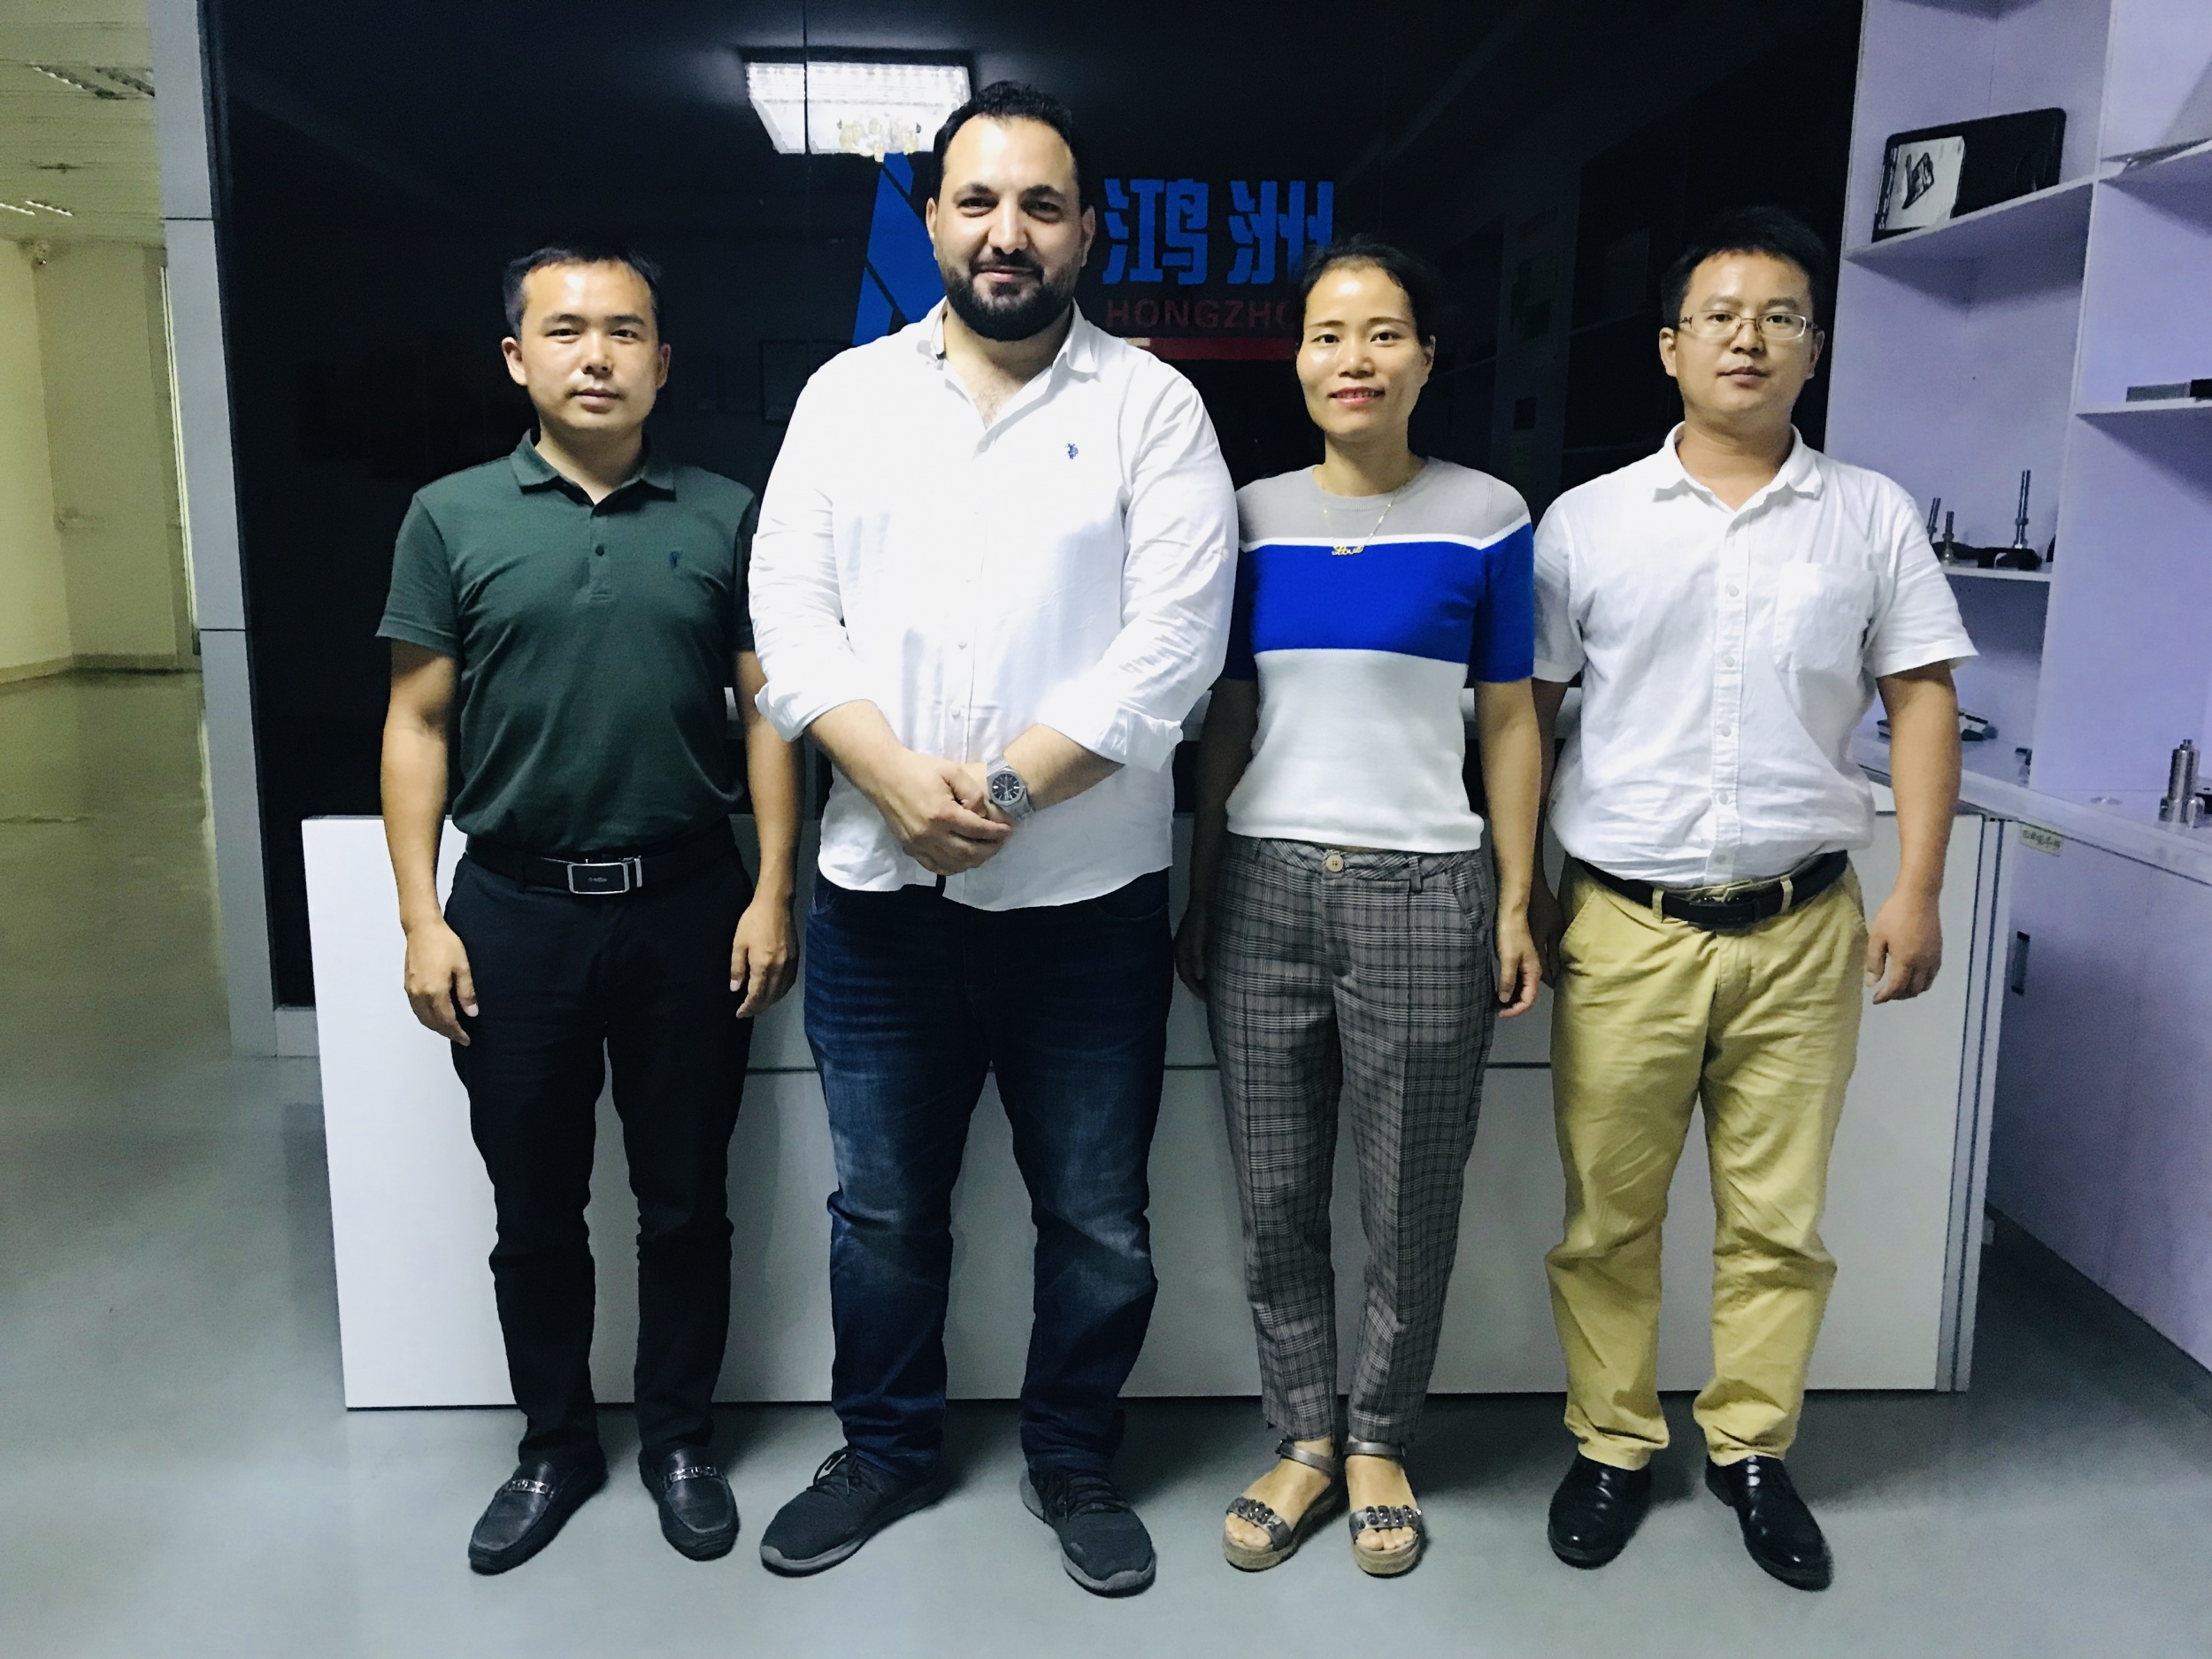 Welcomed Saudi Arabia customer Salah to visit Hongzhou